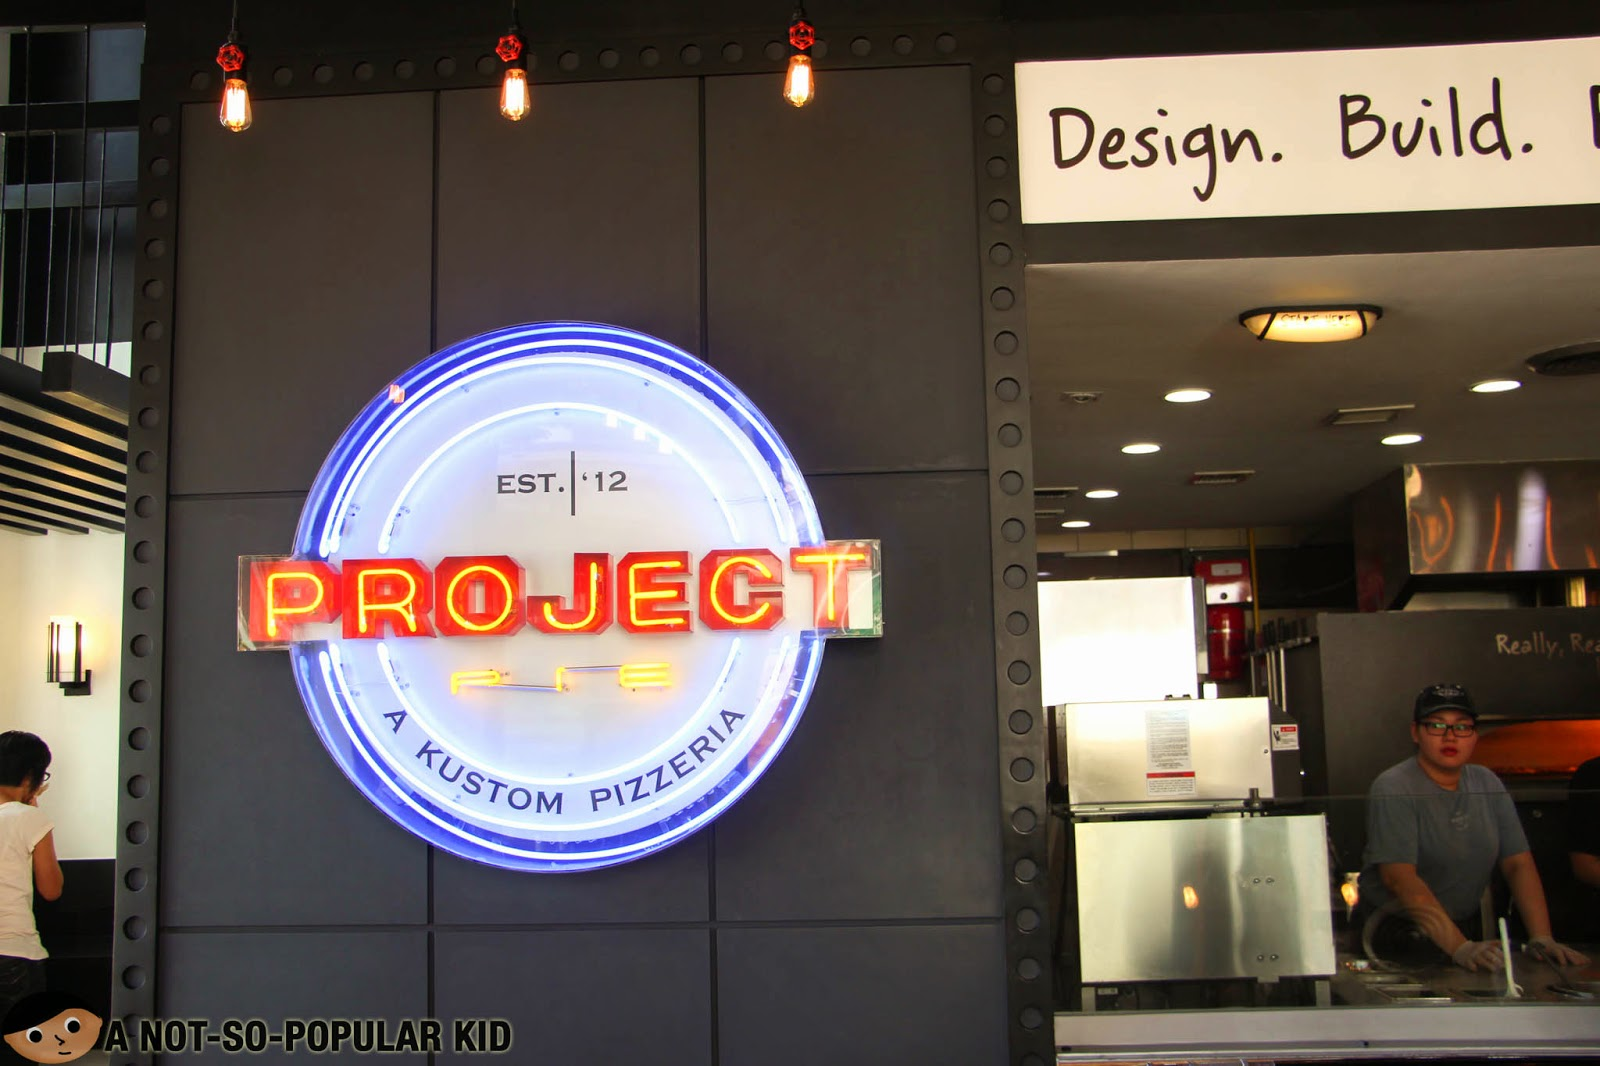 The Project Pie Logo - A Kustom Pizzeria